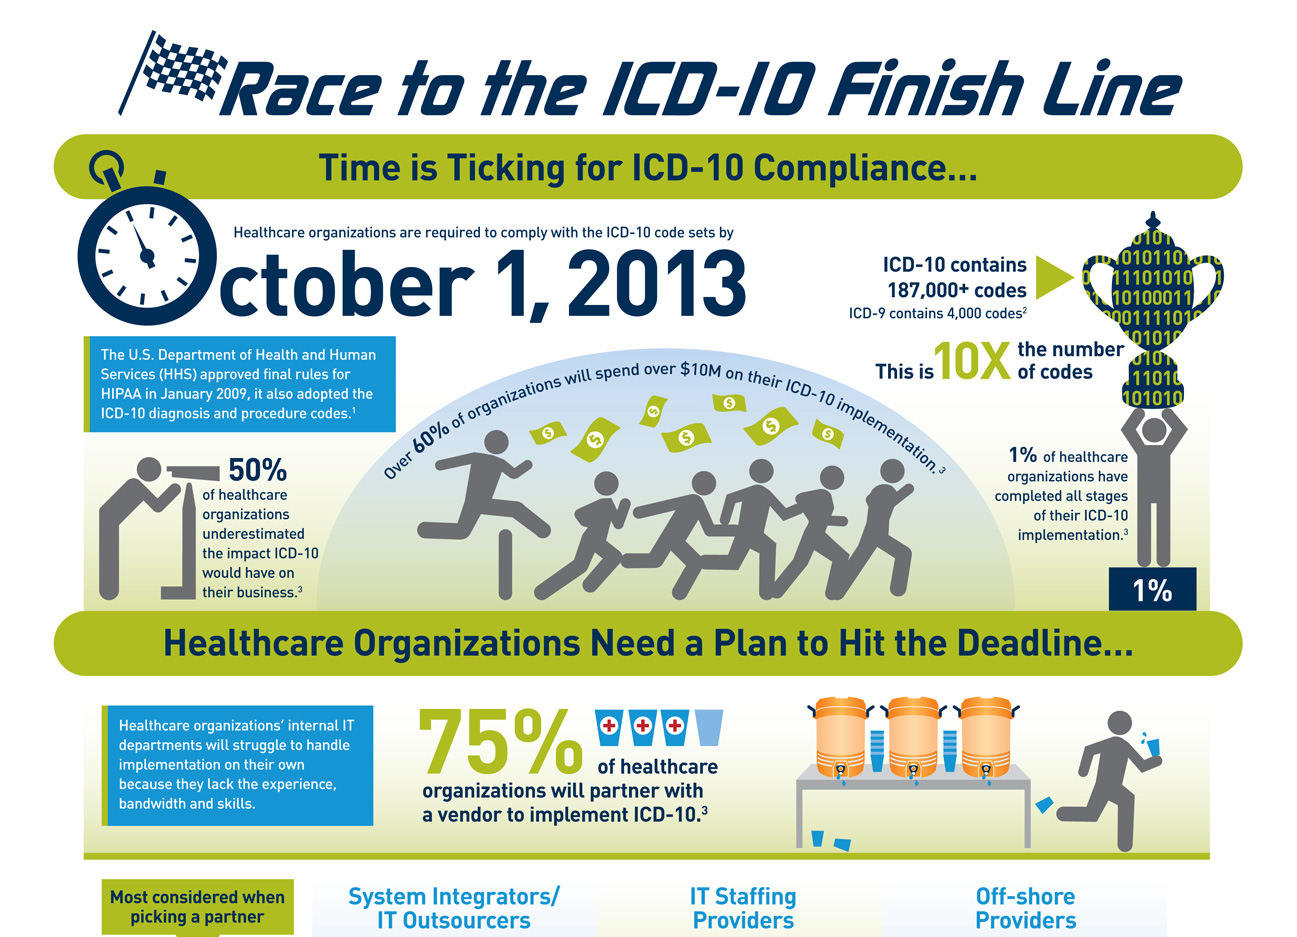 Race to the ICD-10 Finish Line